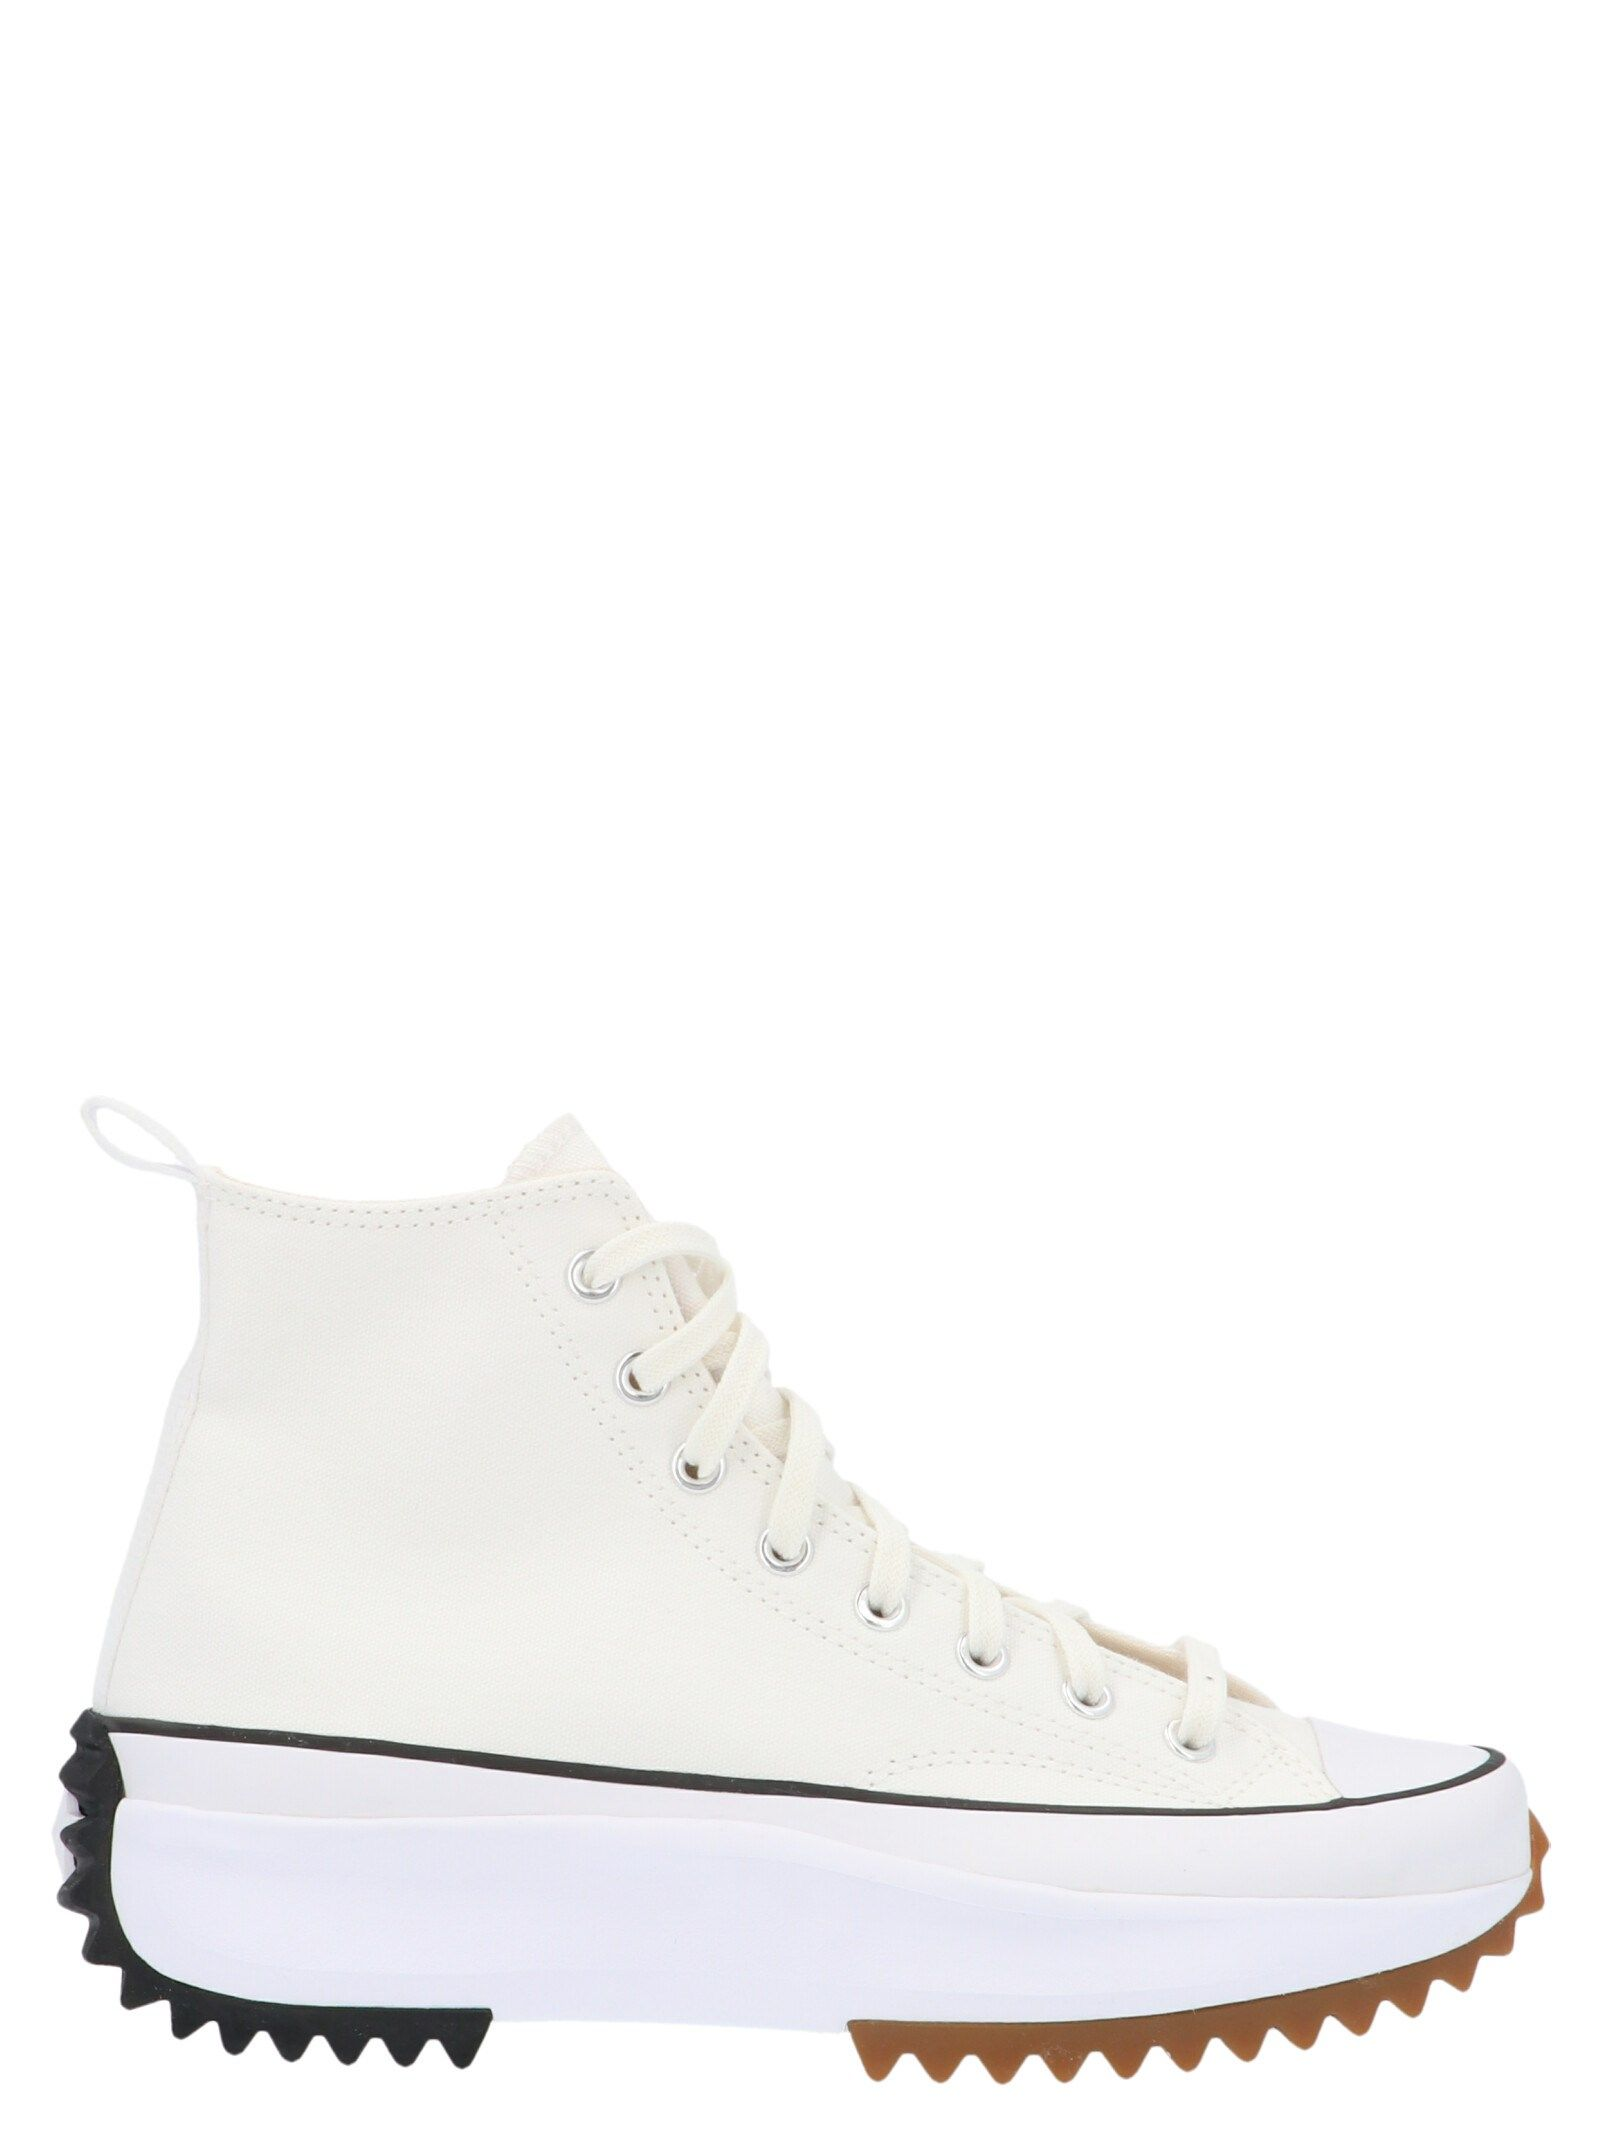 Converse Mid heels CONVERSE WOMEN'S 166799C451 WHITE FABRIC HI TOP SNEAKERS